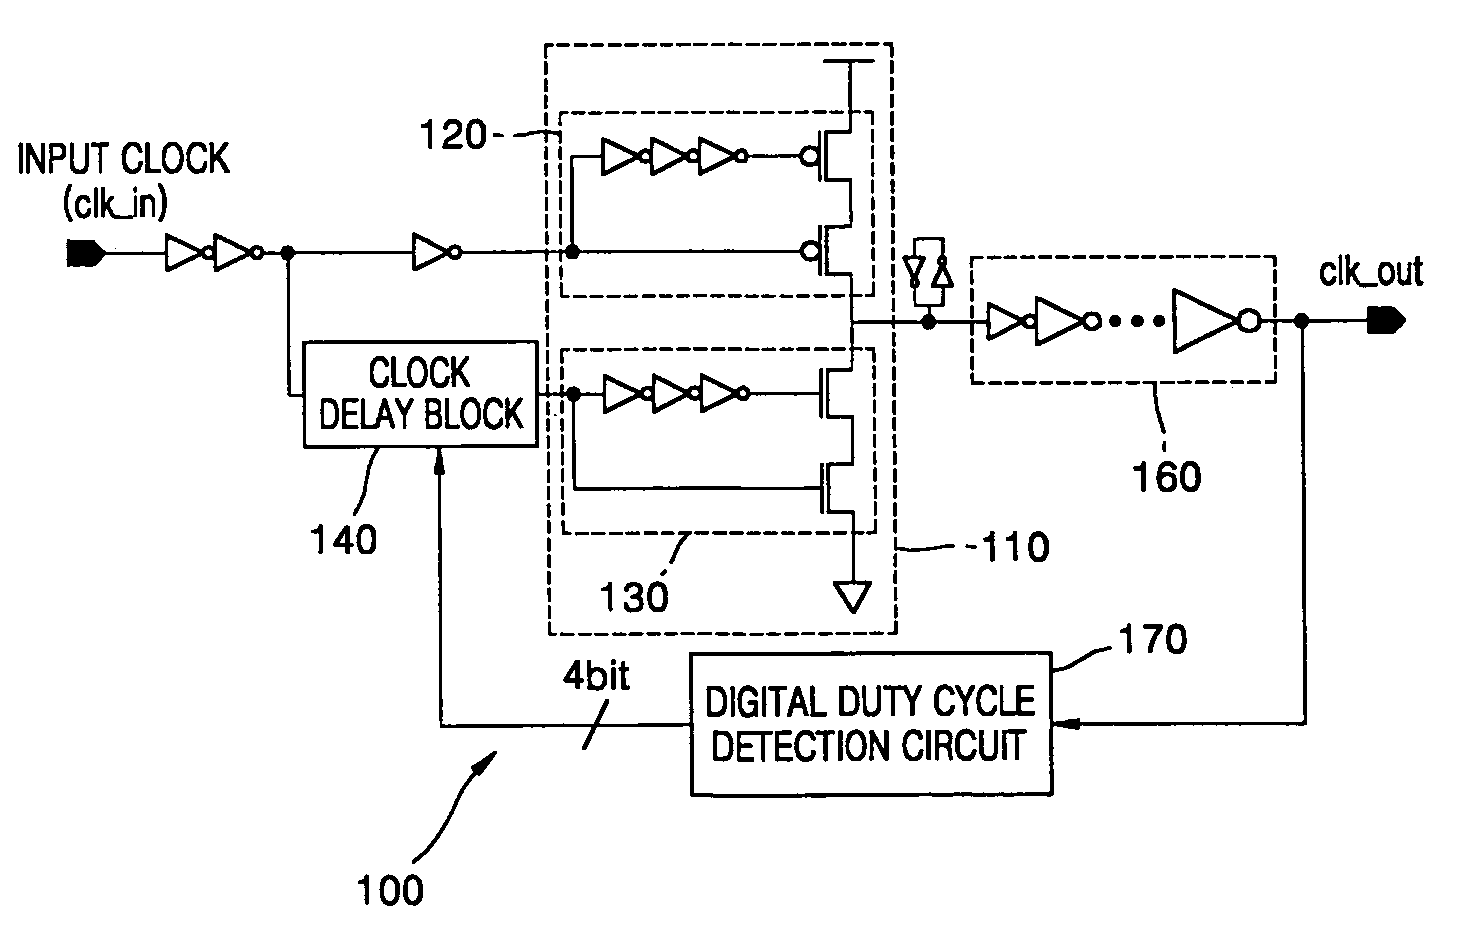 patent us7894934 remote conveyor belt monitoring system and methodpatent us6958639 digital duty cycle correction circuit and method